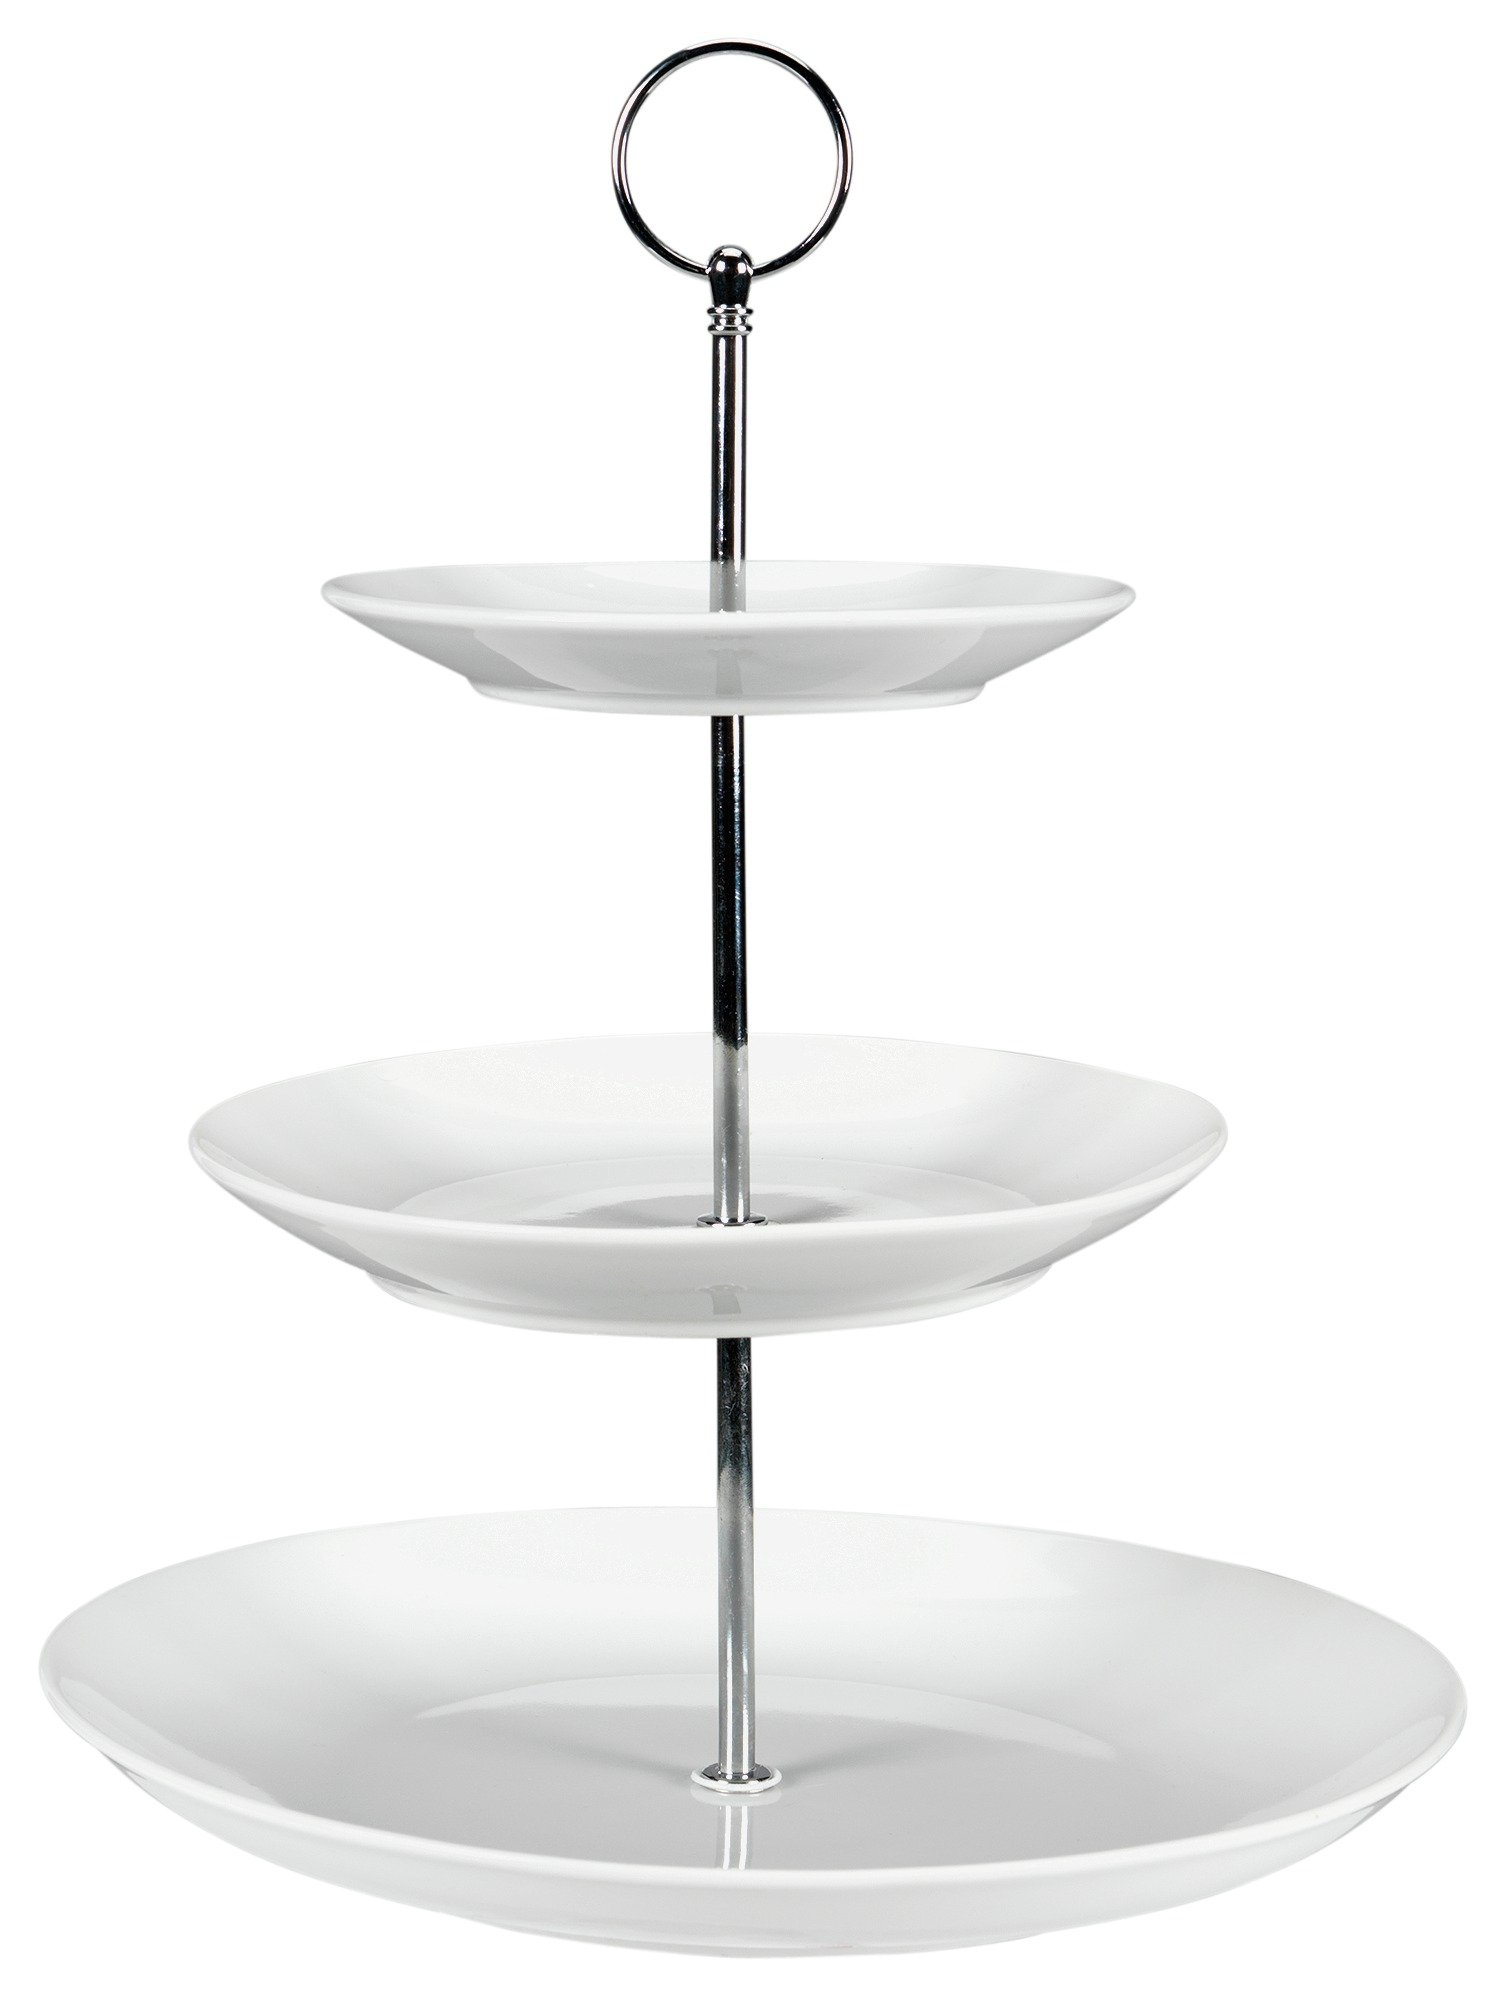 Heart of House - 3 Tier Porcelain Cake Stand